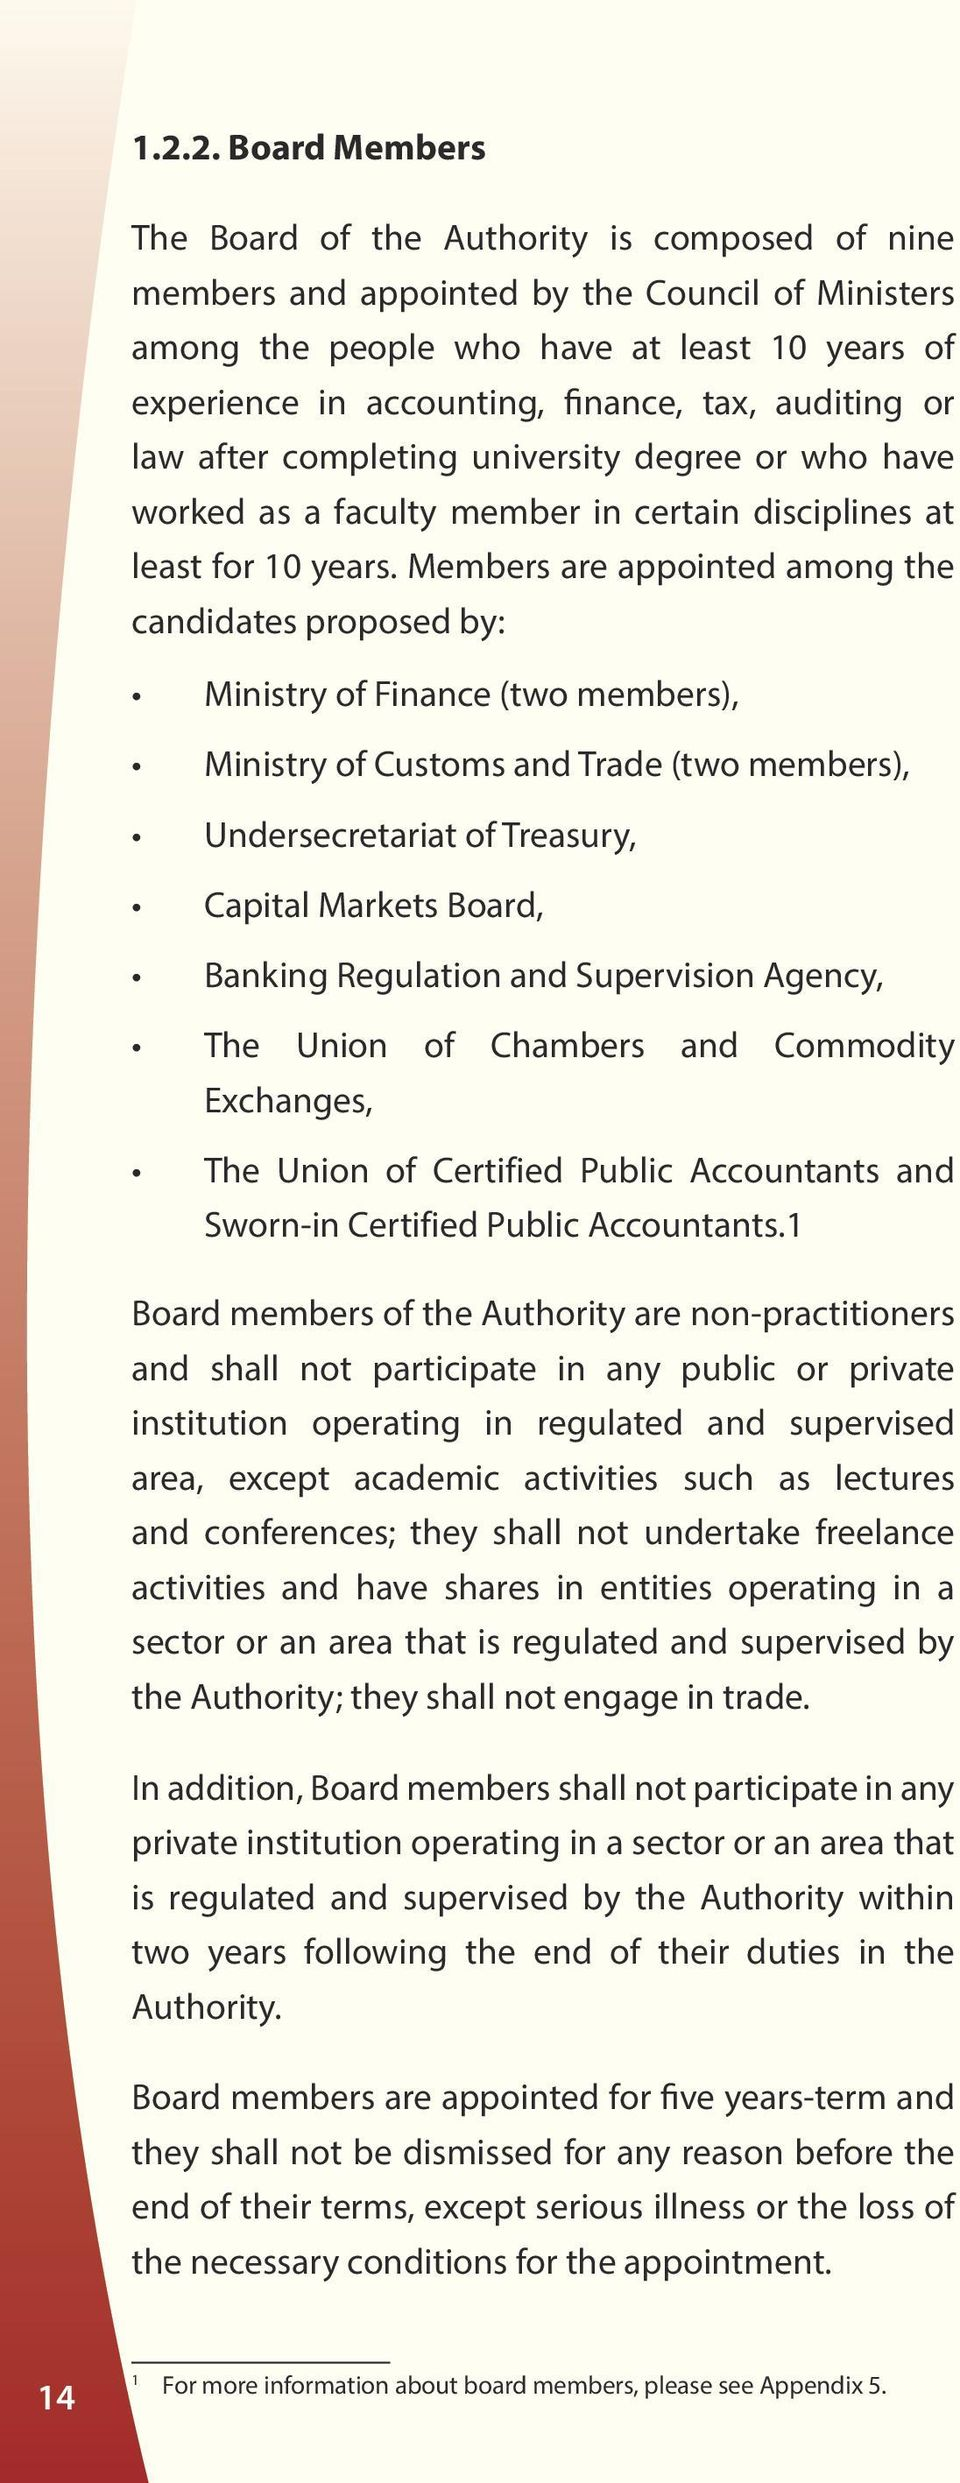 Members are appointed among the candidates proposed by: Ministry of Finance (two members), Ministry of Customs and Trade (two members), Undersecretariat of Treasury, Capital Markets Board, Banking